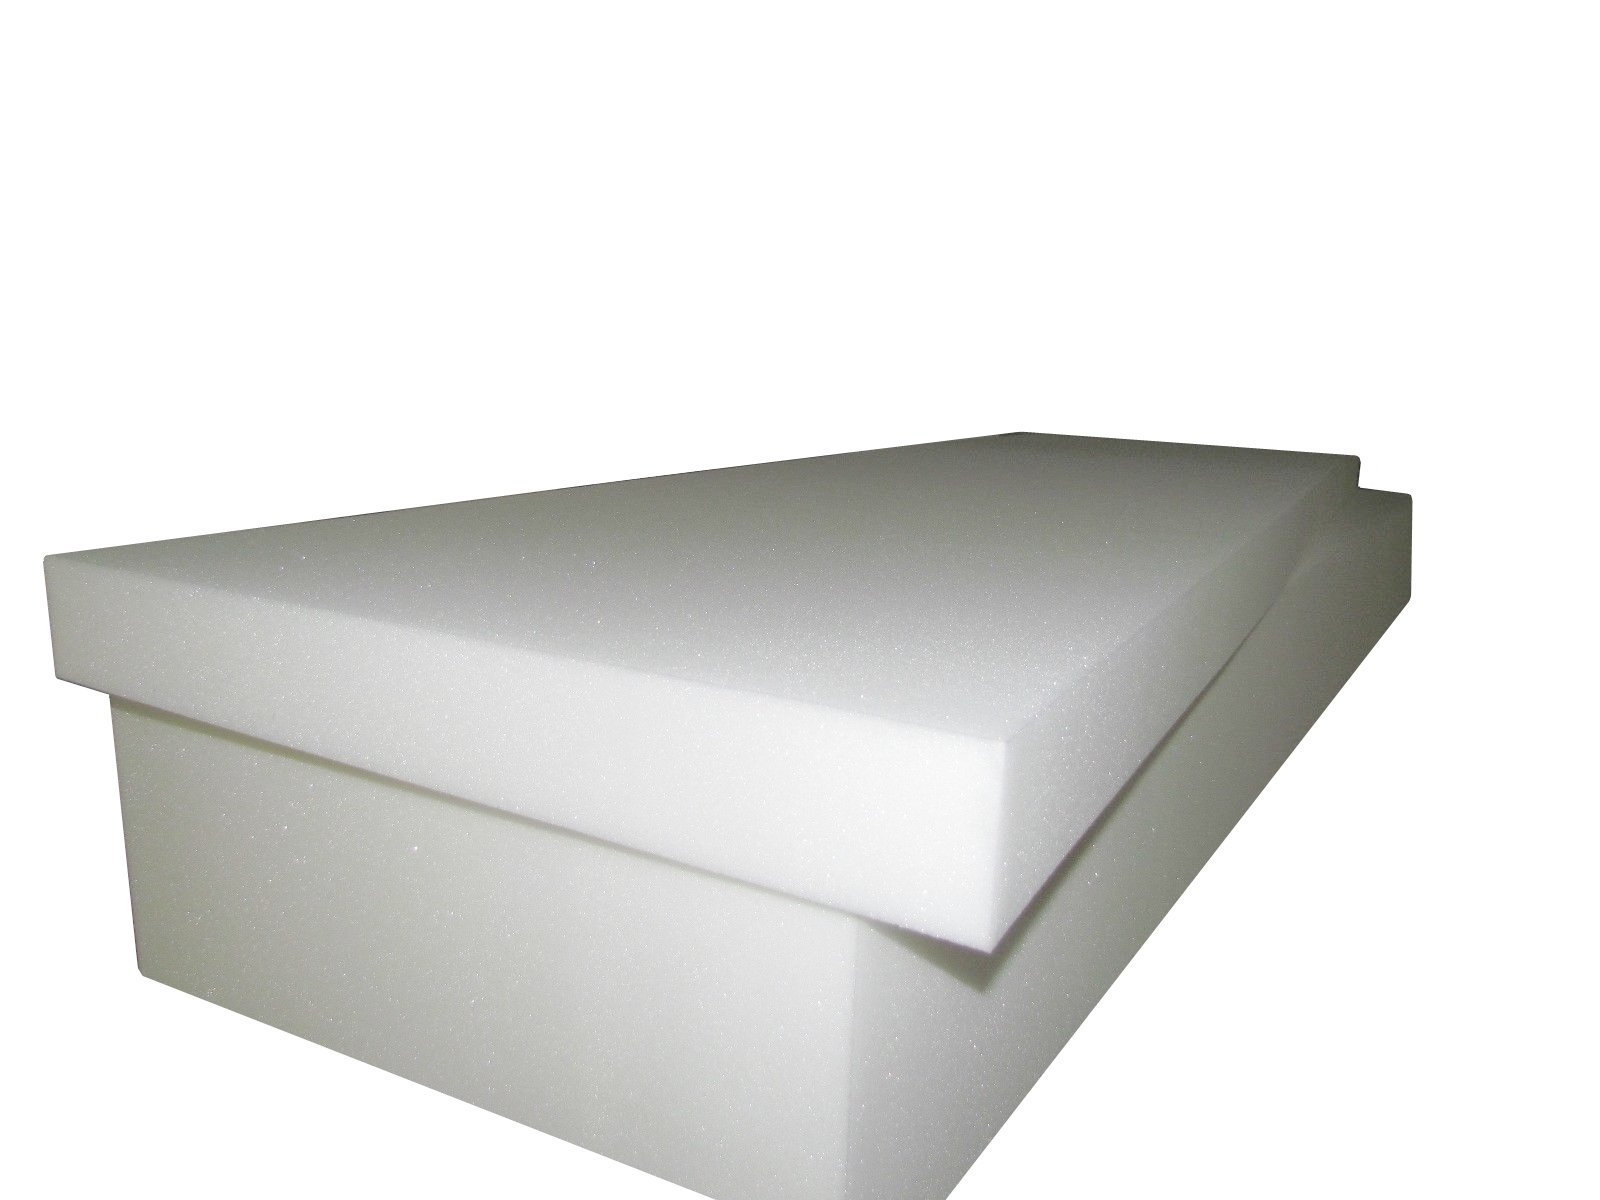 Foam Cushion 8''T x 30''W x 80''L (1536) ''MEDIUM FIRM'' Seat Replacement Foam Cushion, Upholstery Foam Slab, Foam Padding